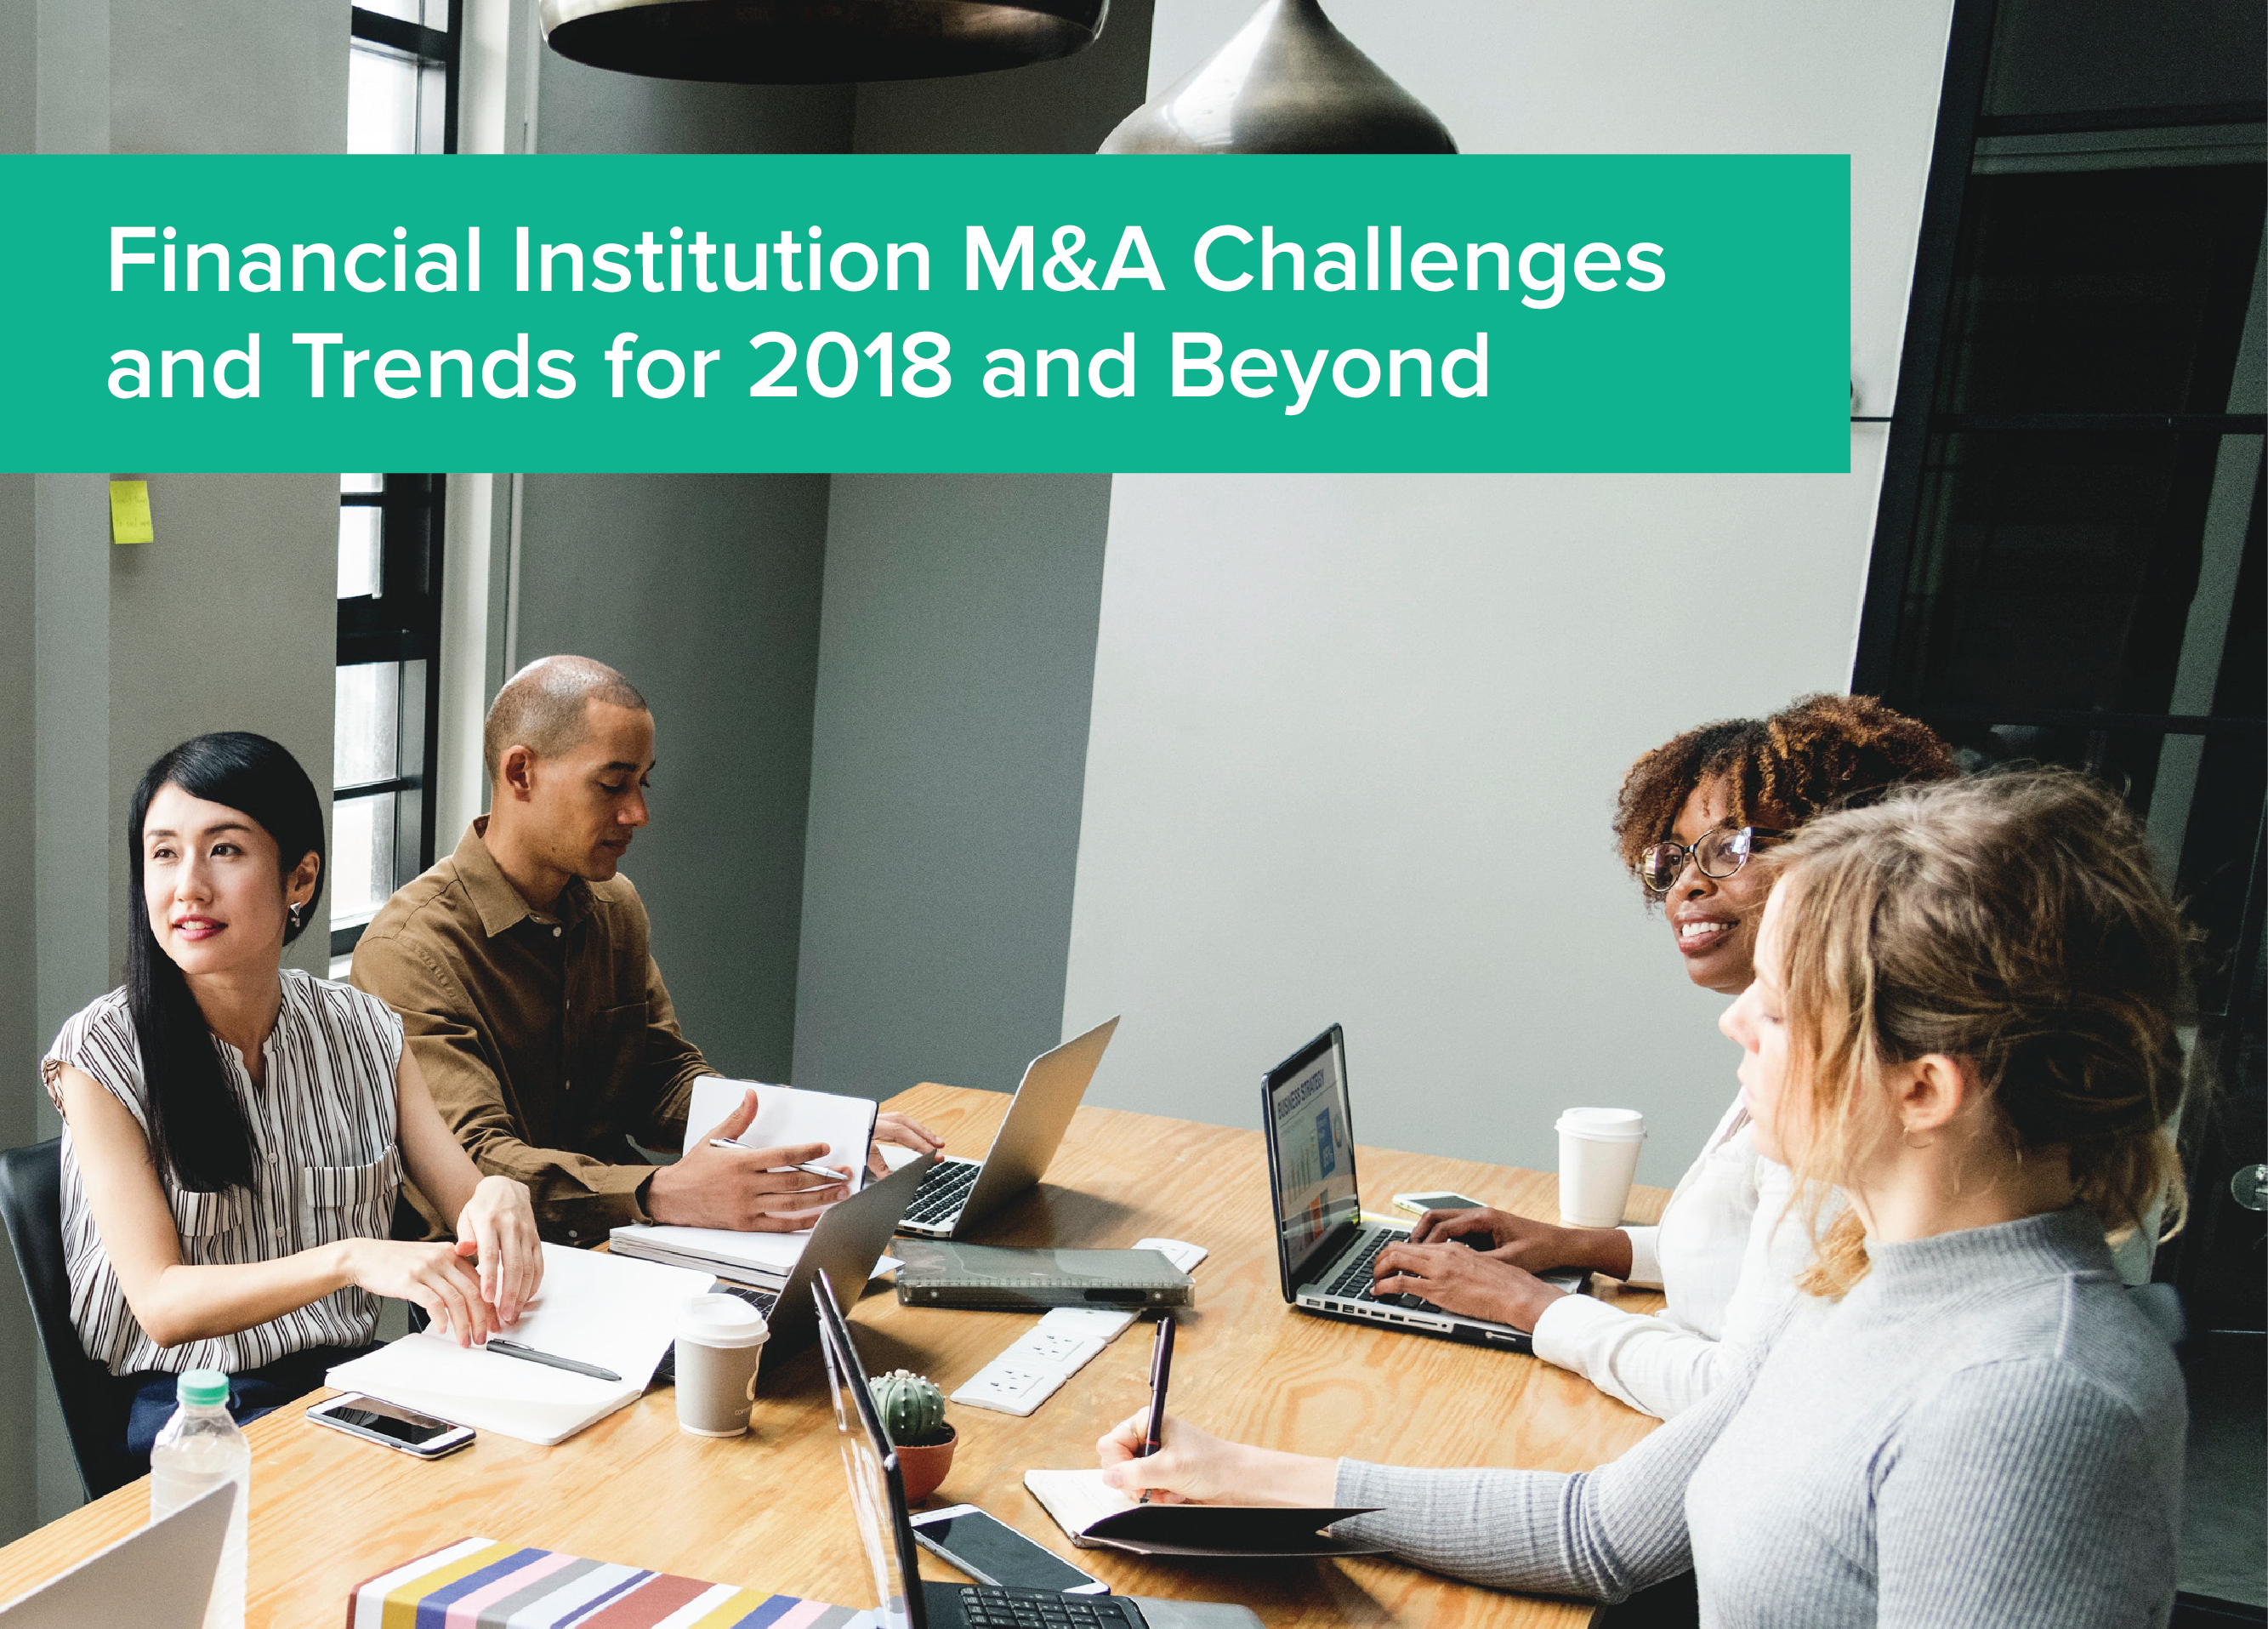 Financial Institution M&A Challenges and Trends for 2018 and Beyond